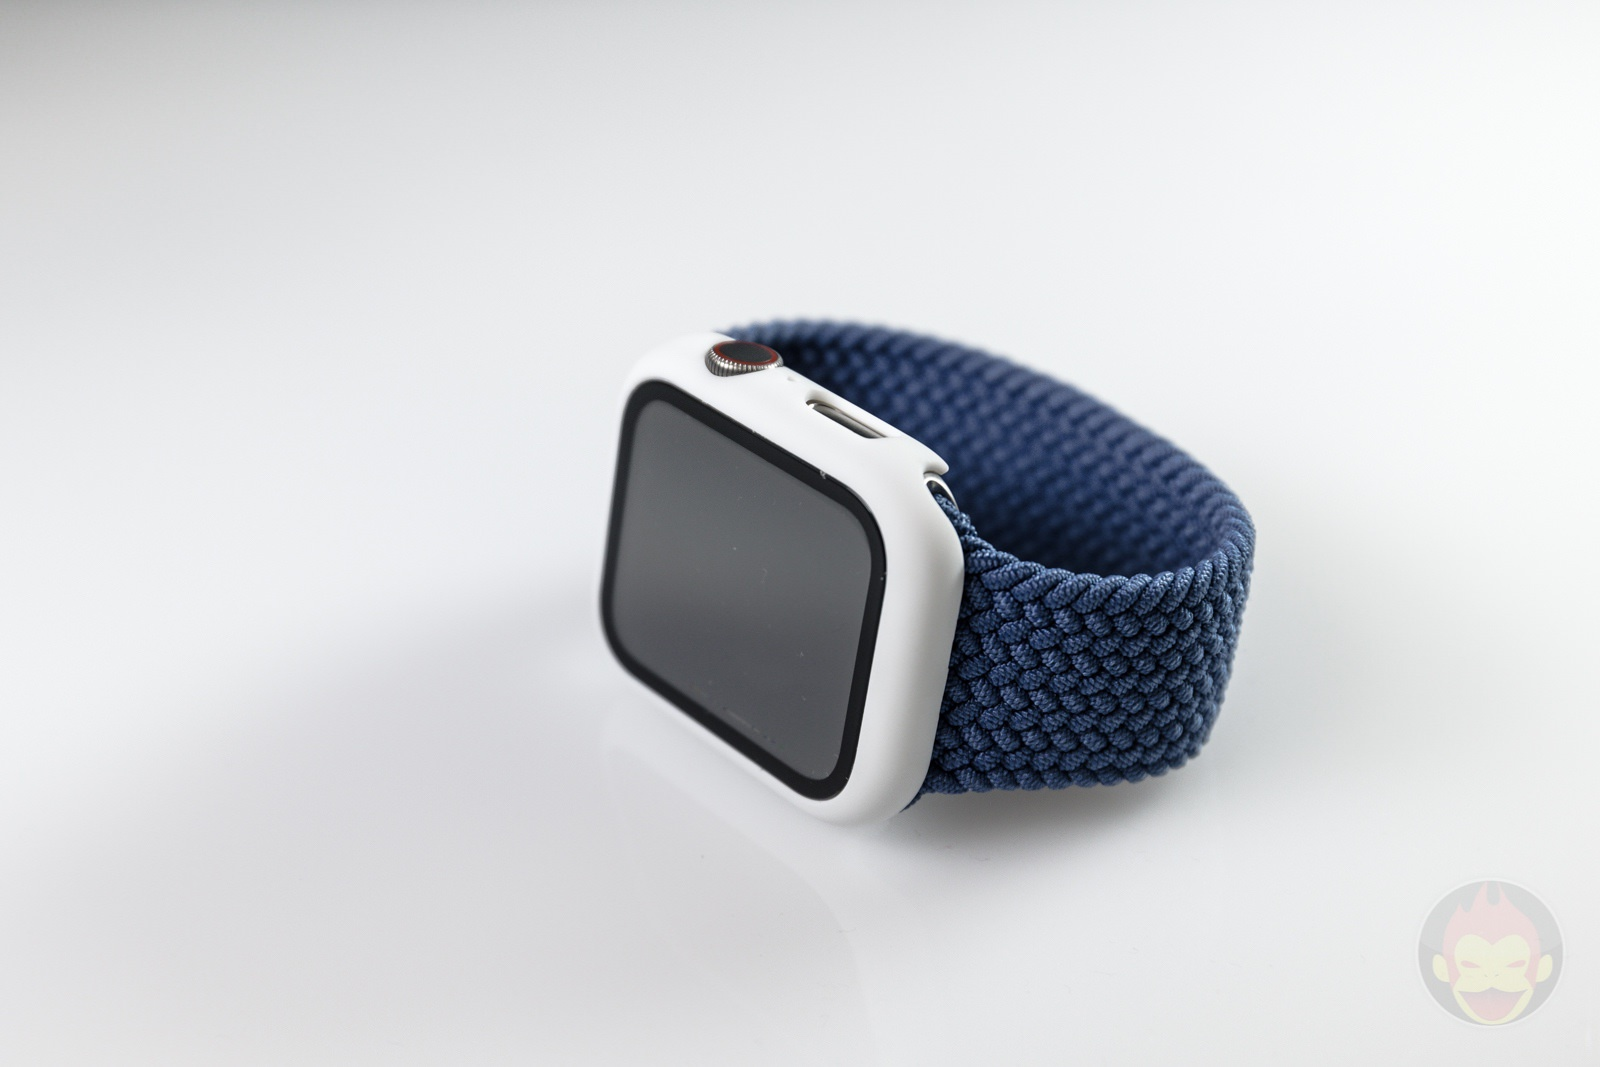 Reflying Apple Watch Case Review 02